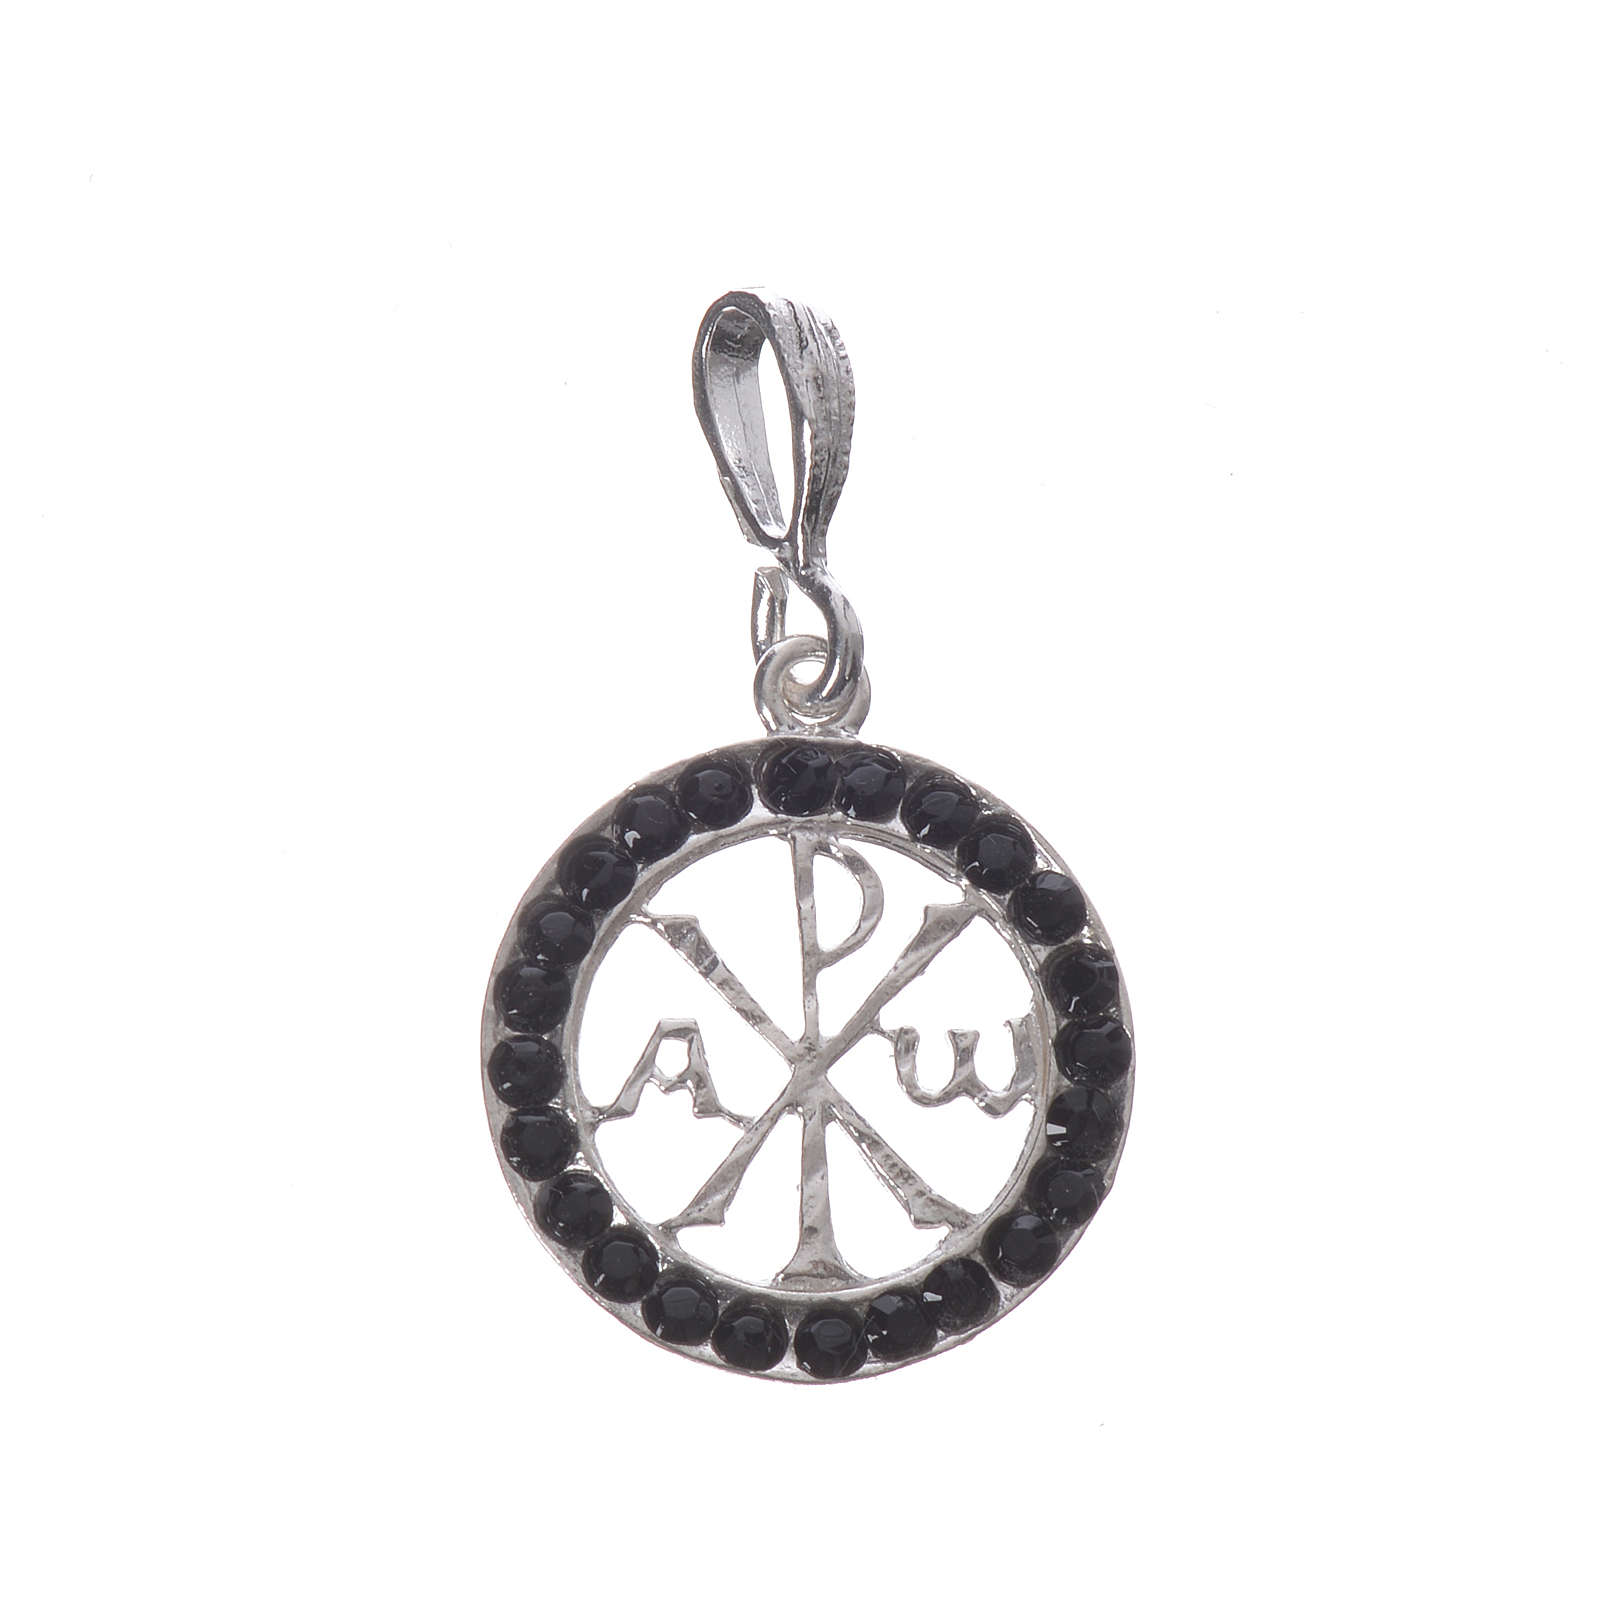 Pendant charm in 800 silver and black Swarowski crystal 4